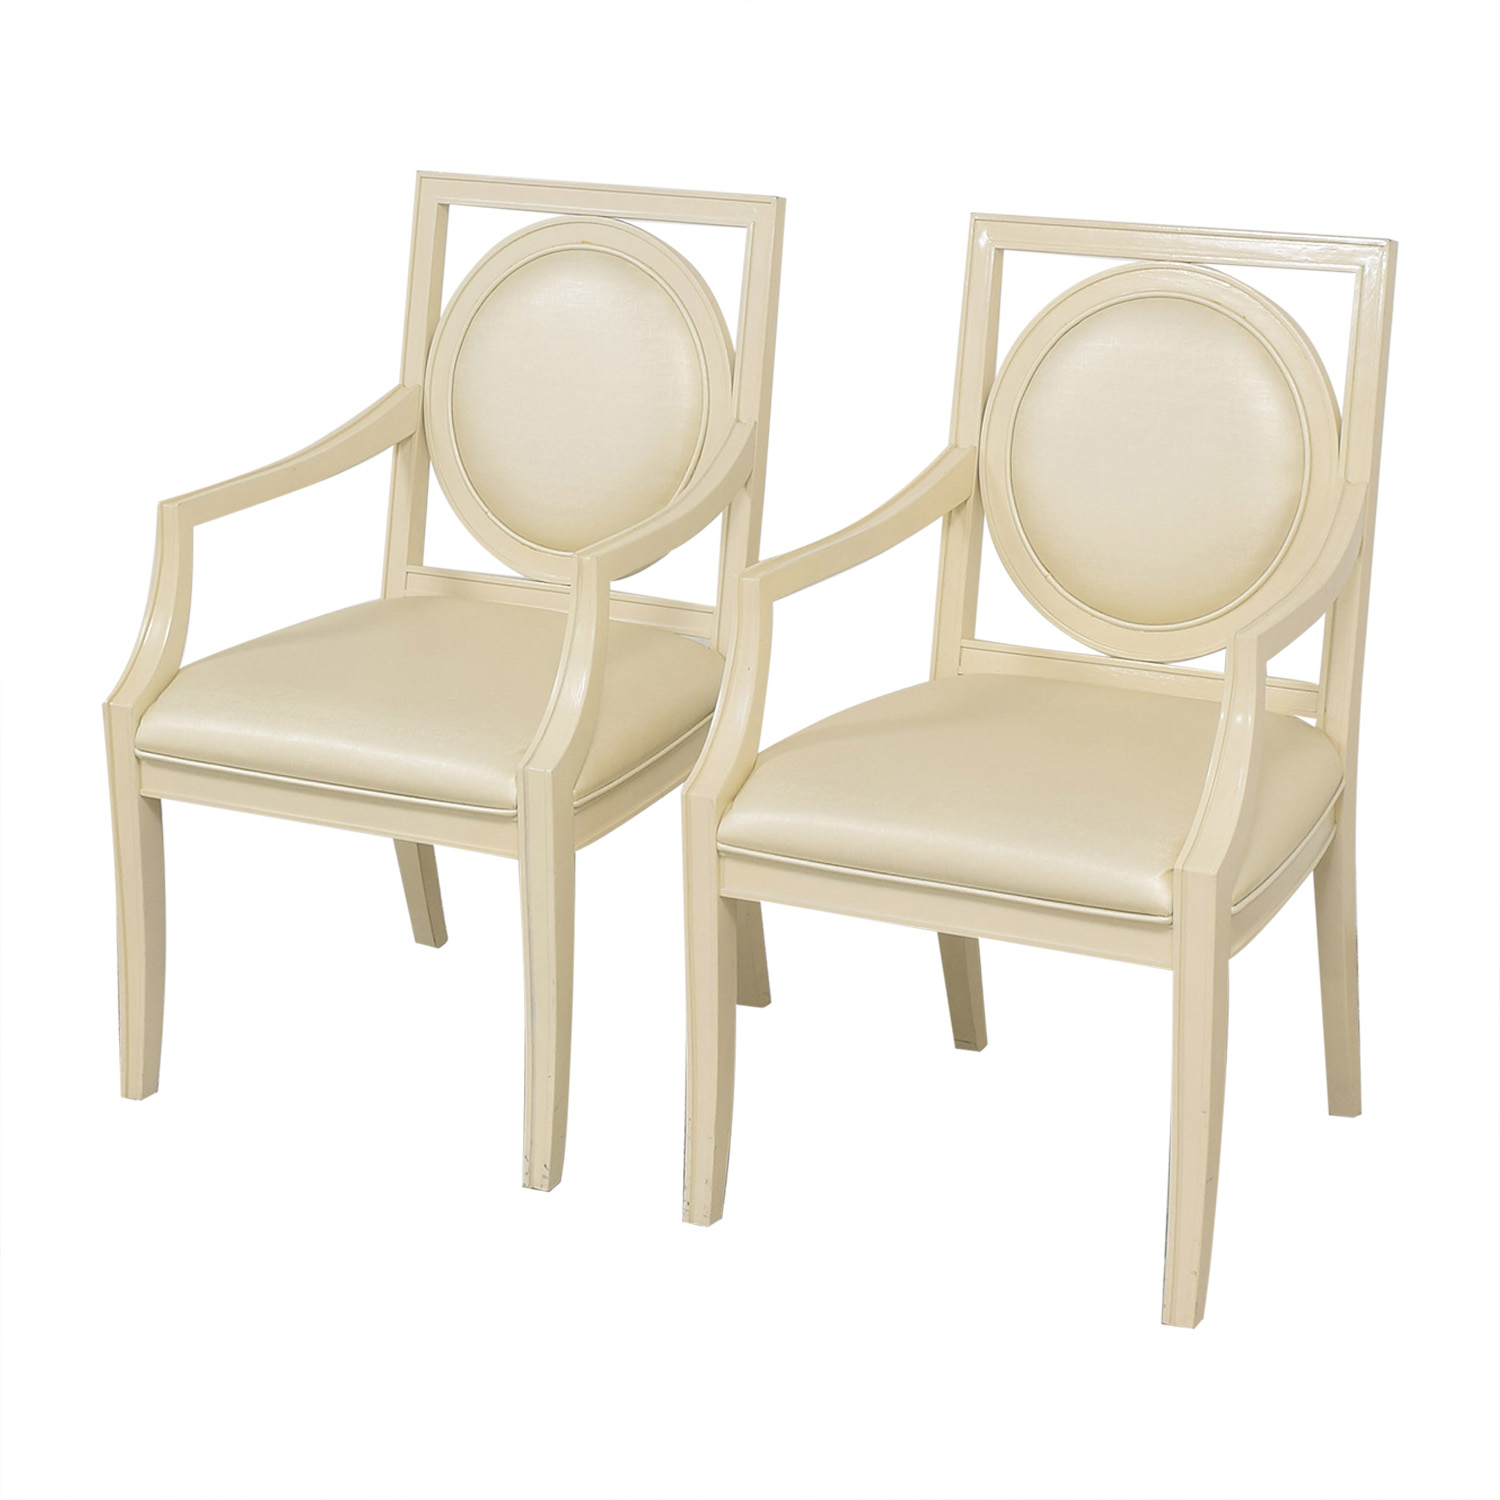 Bernhardt Bernhardt Salon Arm Chairs ma